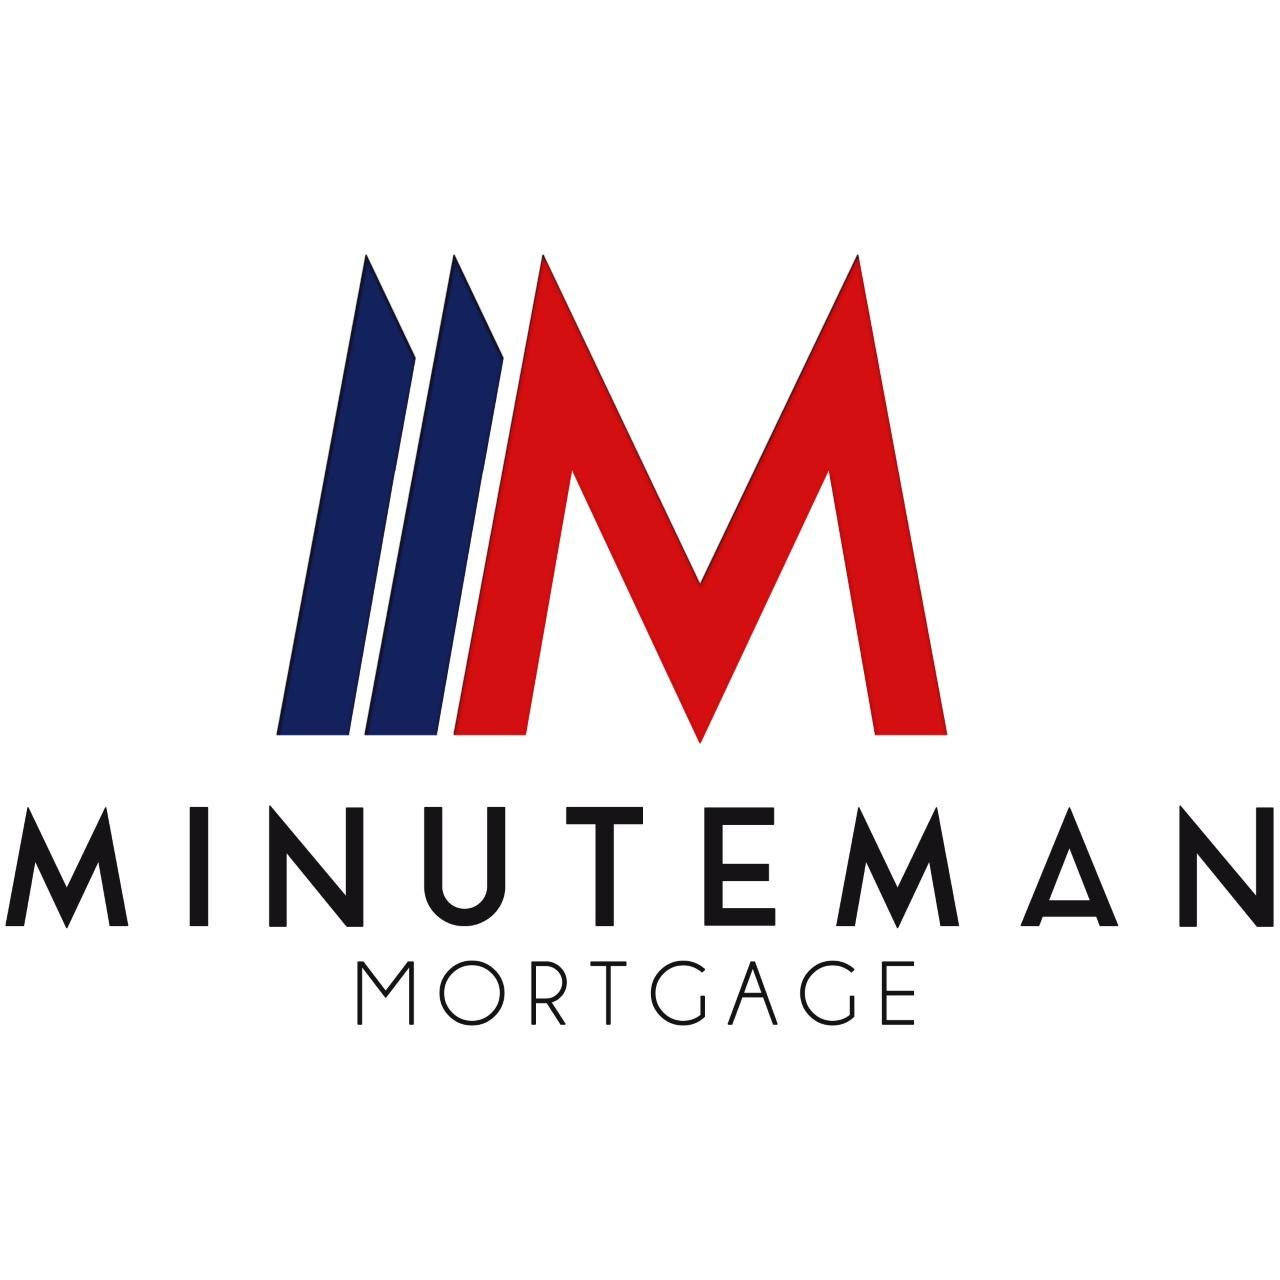 Minuteman Mortgage - Hillsboro, OR 97006 - (971)226-9750 | ShowMeLocal.com